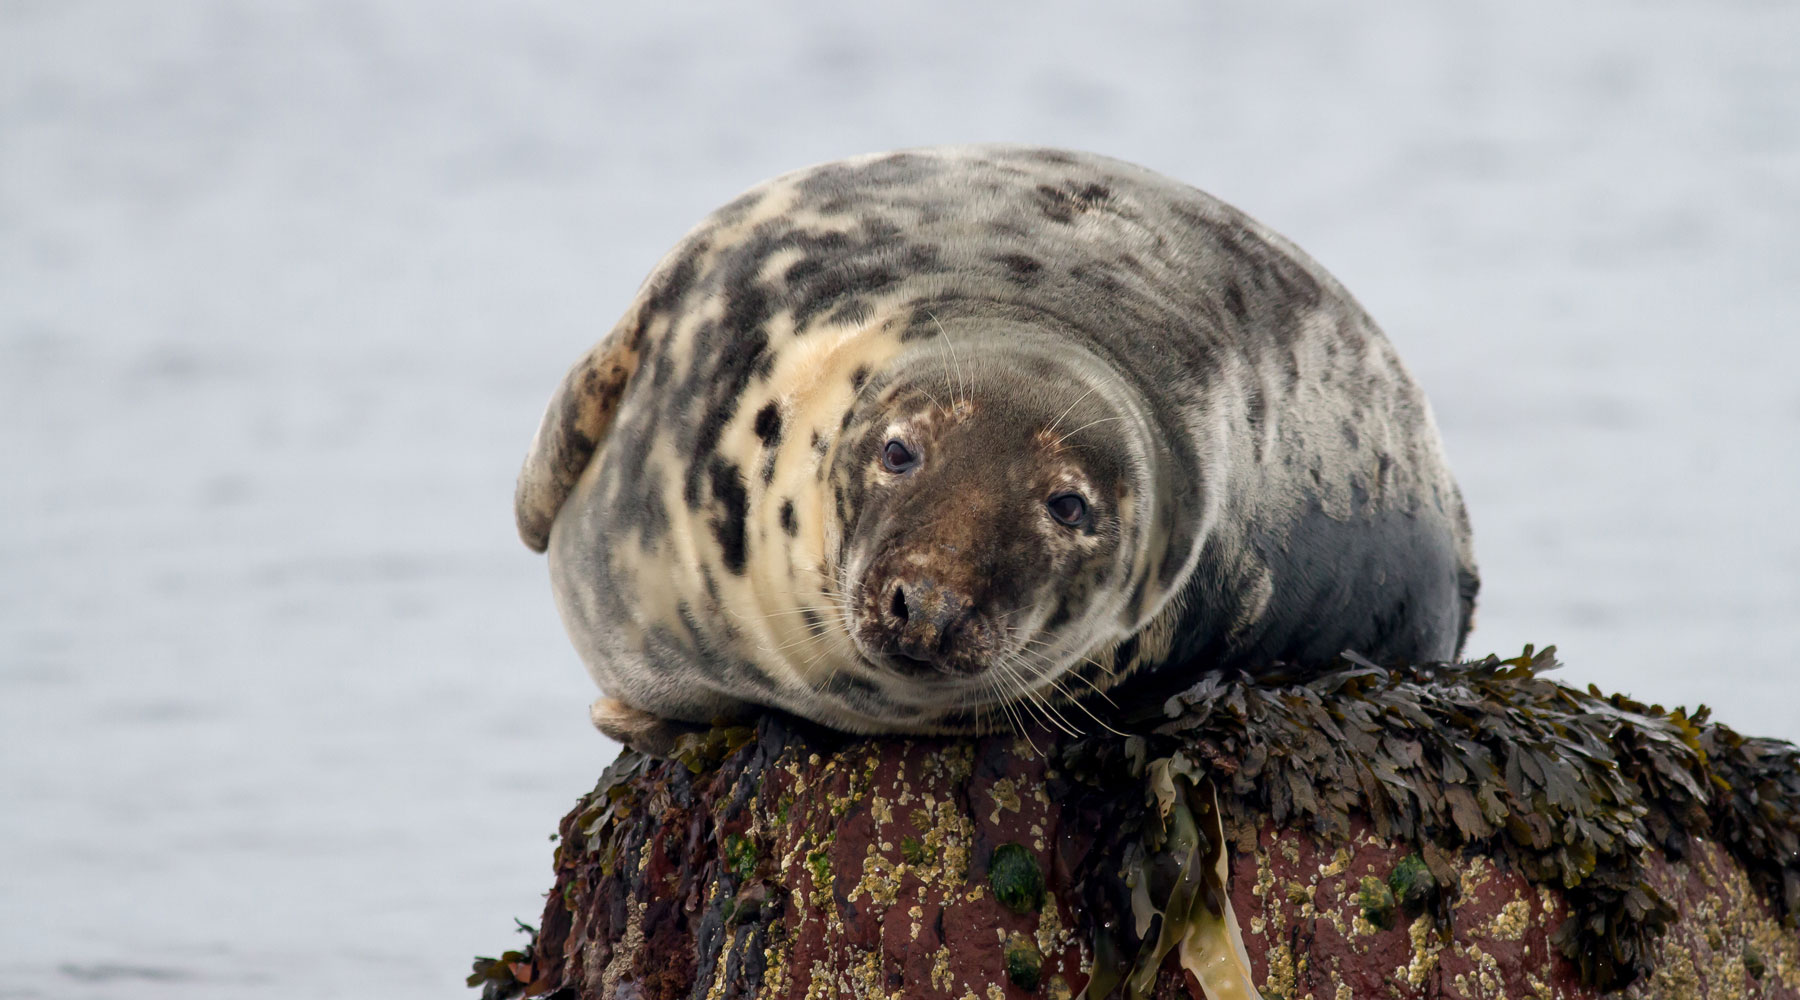 Mike Snelle | Grey Seal